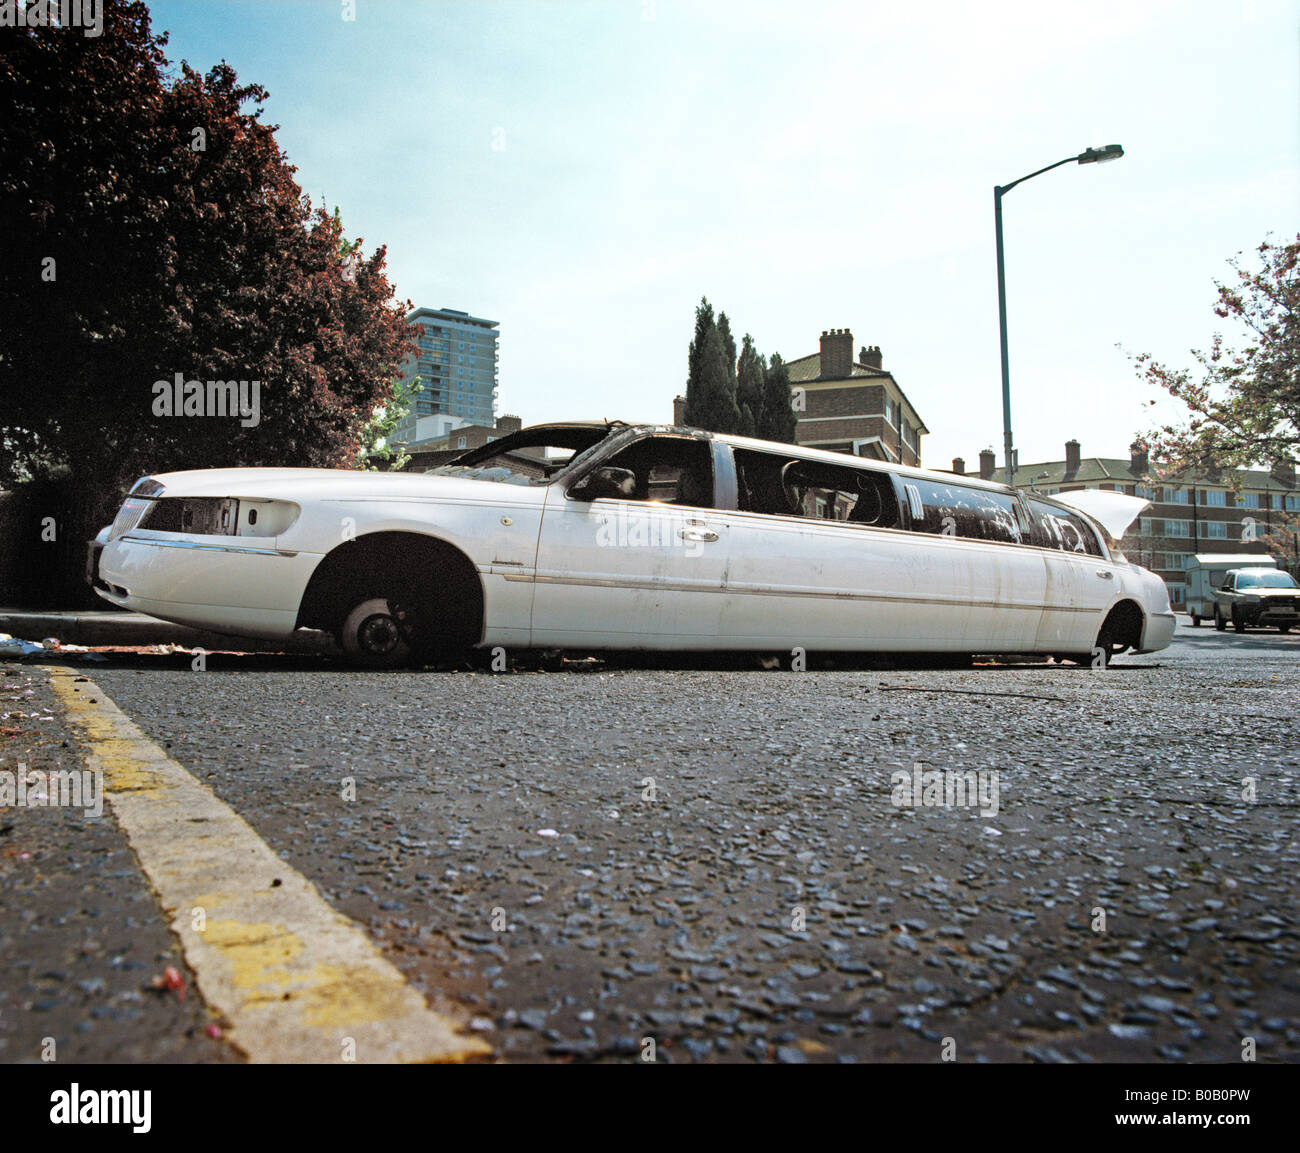 limousine burnt out in road - Stock Image